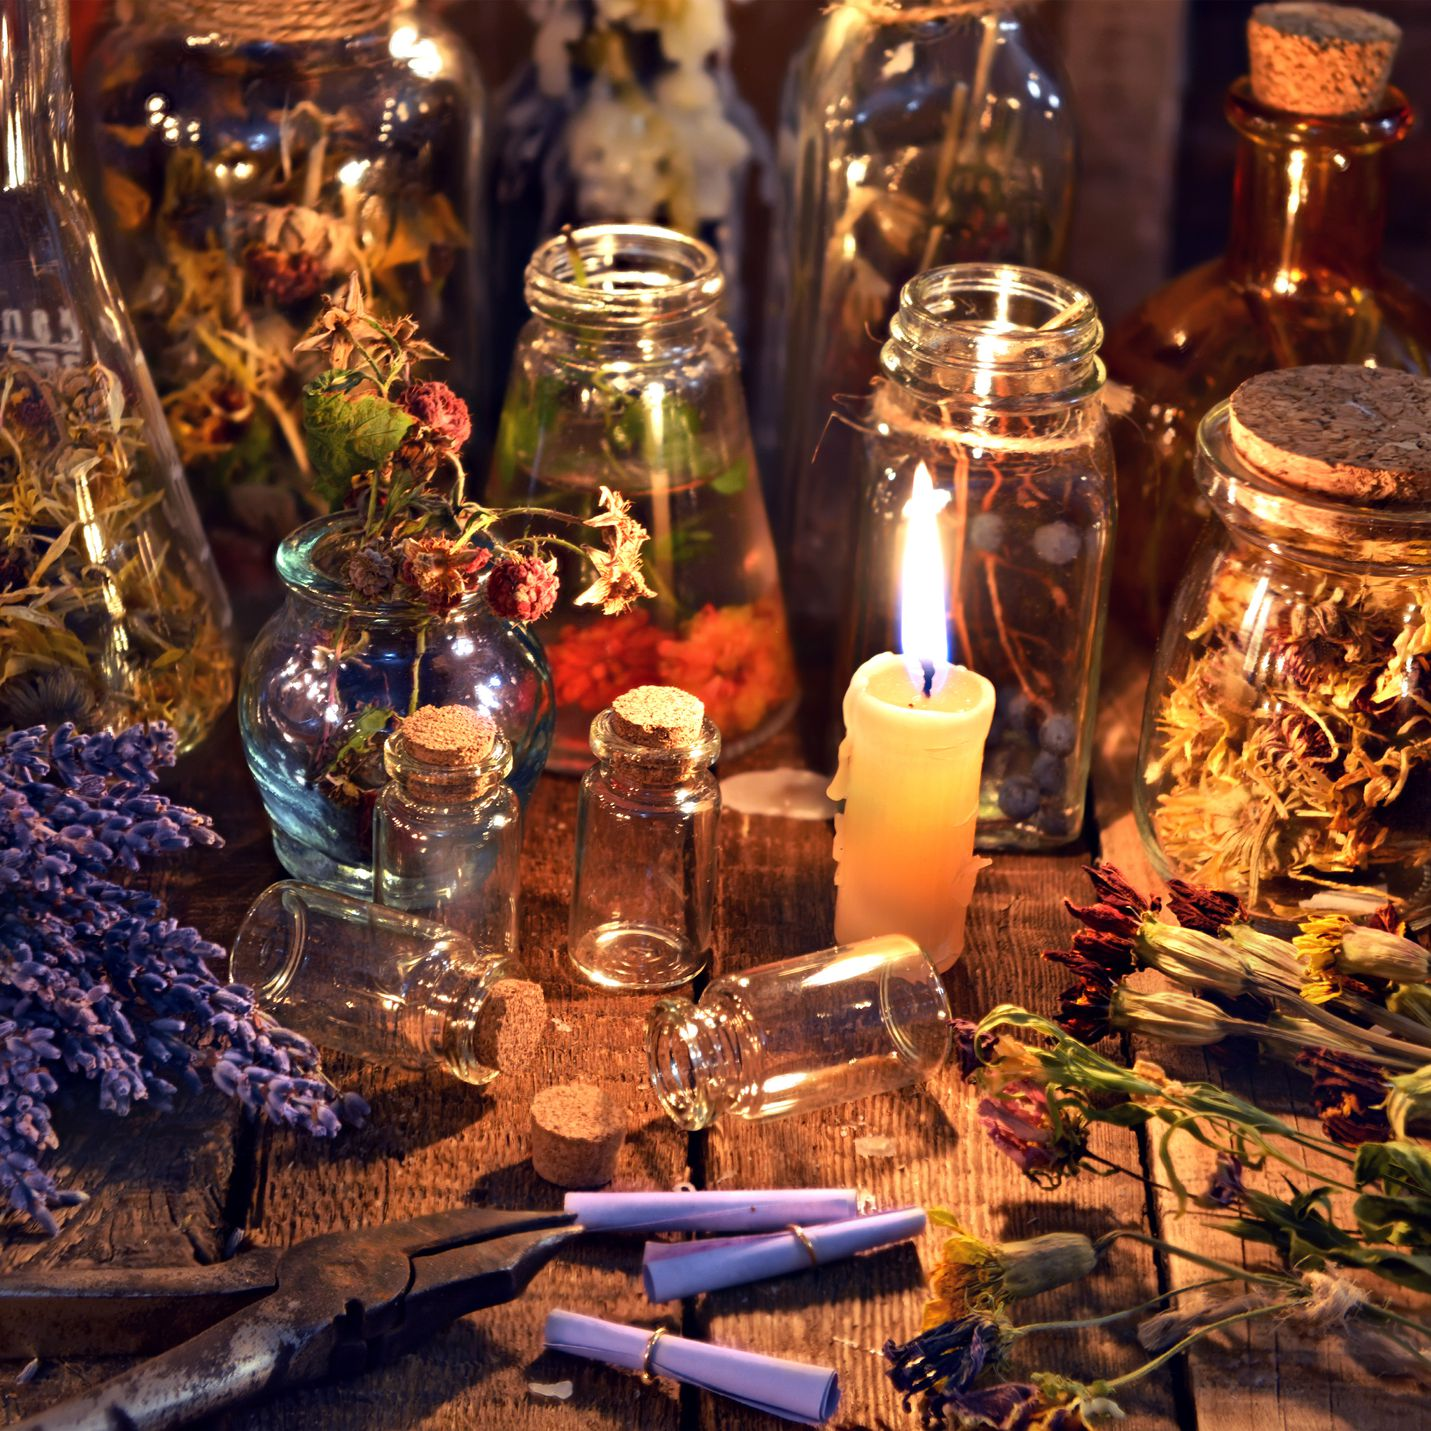 Basic Principles and Concepts of Wicca